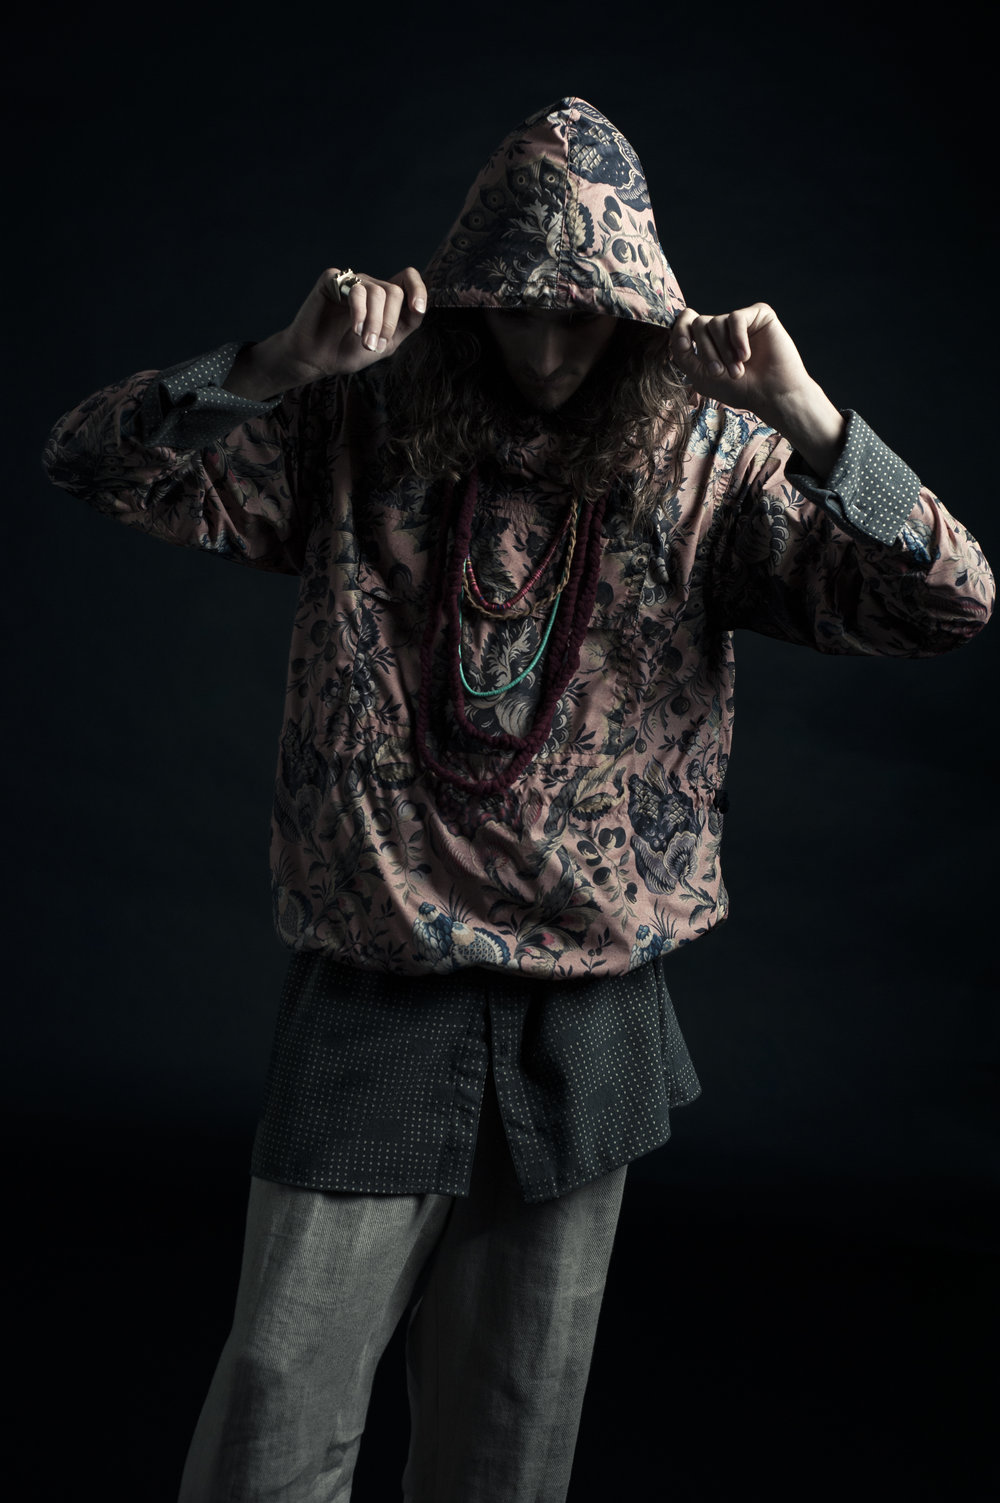 Floral windbreaker poncho, Dries Van Noten. Tunic top by Frank Tsai, MFA Fashion Design and Andrea Nieto, BFA Textile Design. Layered pants by Didvik Kuang, MFA Fashion Design. Beaded necklaces, model's own. Fabric necklaces made from UNIQLO sweaters.